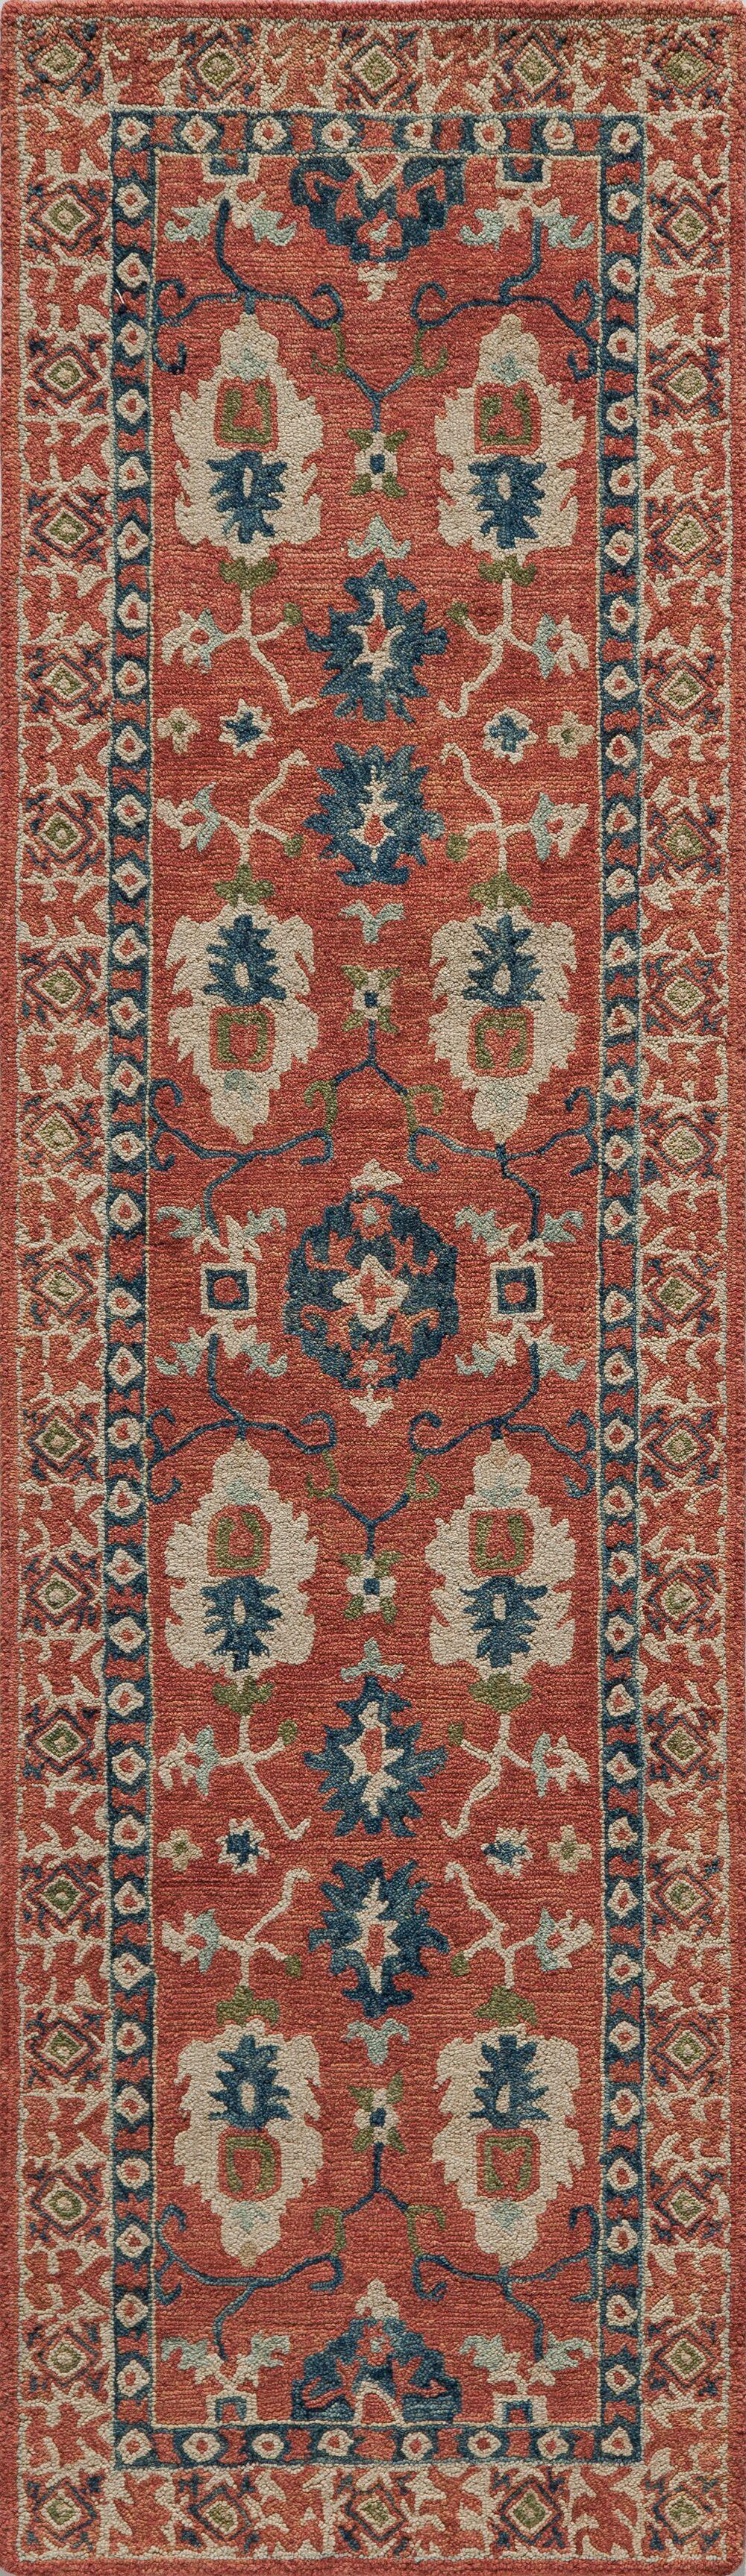 Adilet Hand-Hooked Red Area Rug Rug Size: Rectangle 7'6